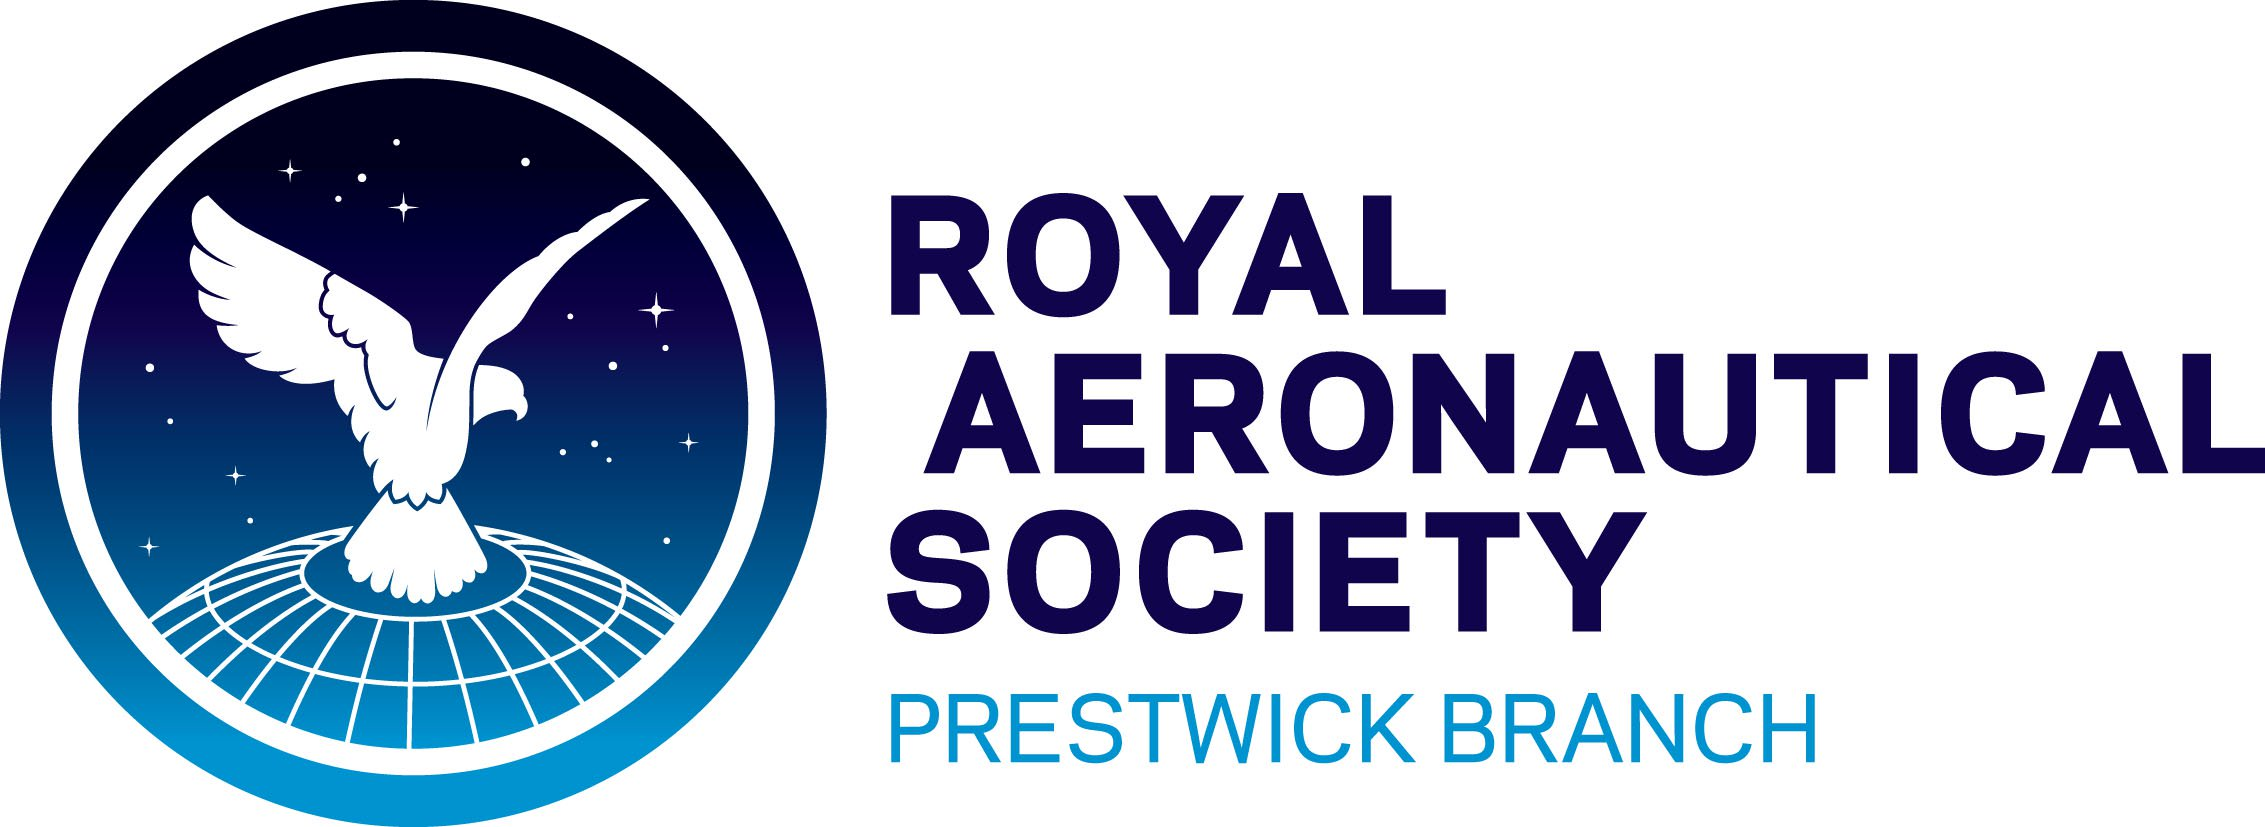 Prestwick Branch of the Royal Aeronautical Society